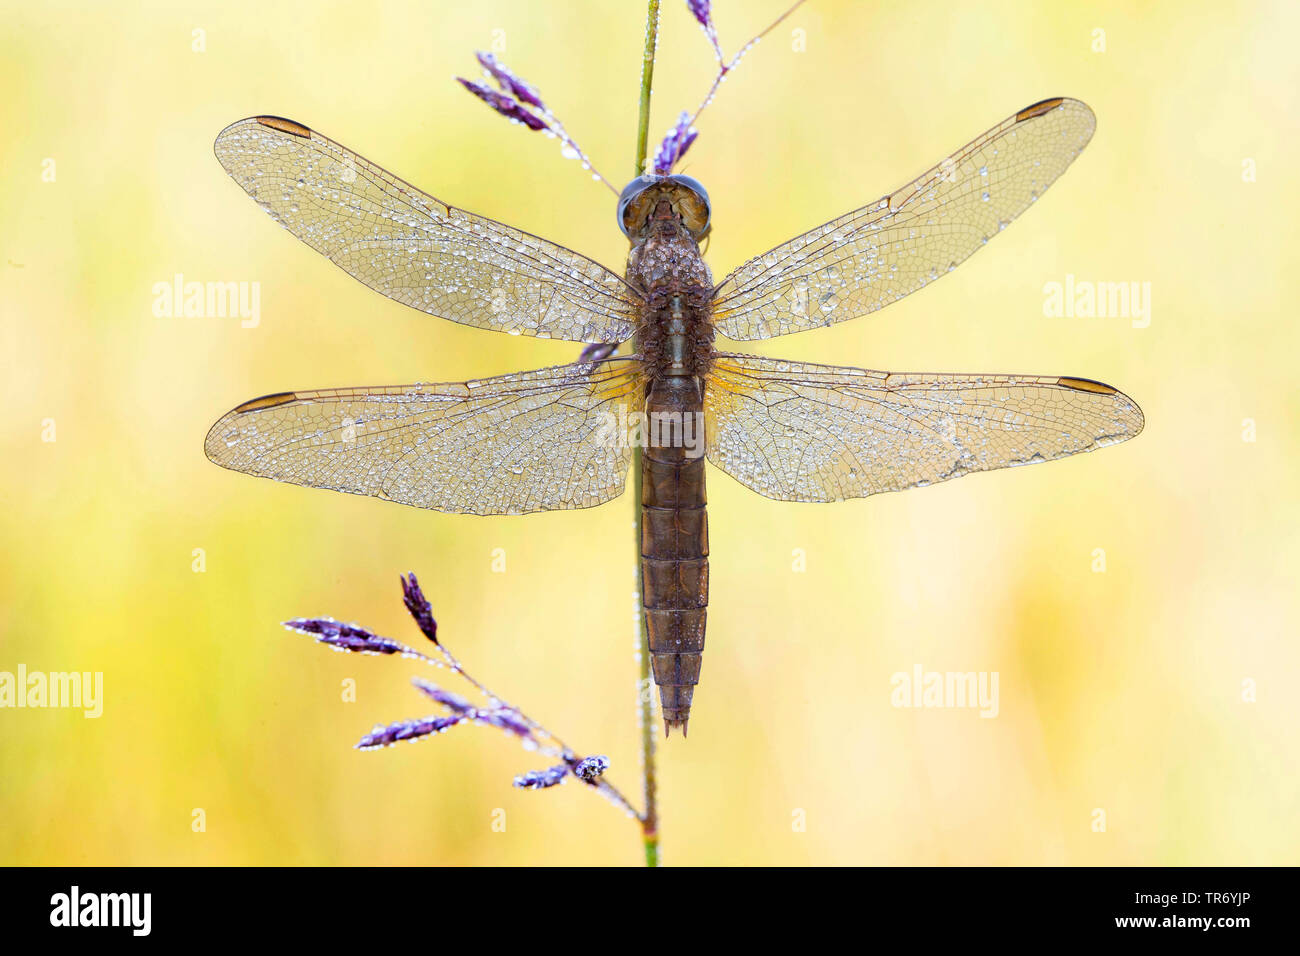 Broad Scarlet, Common Scarlet-darter, Scarlet Darter, Scarlet Dragonfly (Crocothemis erythraea, Croccothemis erythraea), female with dewdrops at a stem, Germany, Bavaria Stock Photo